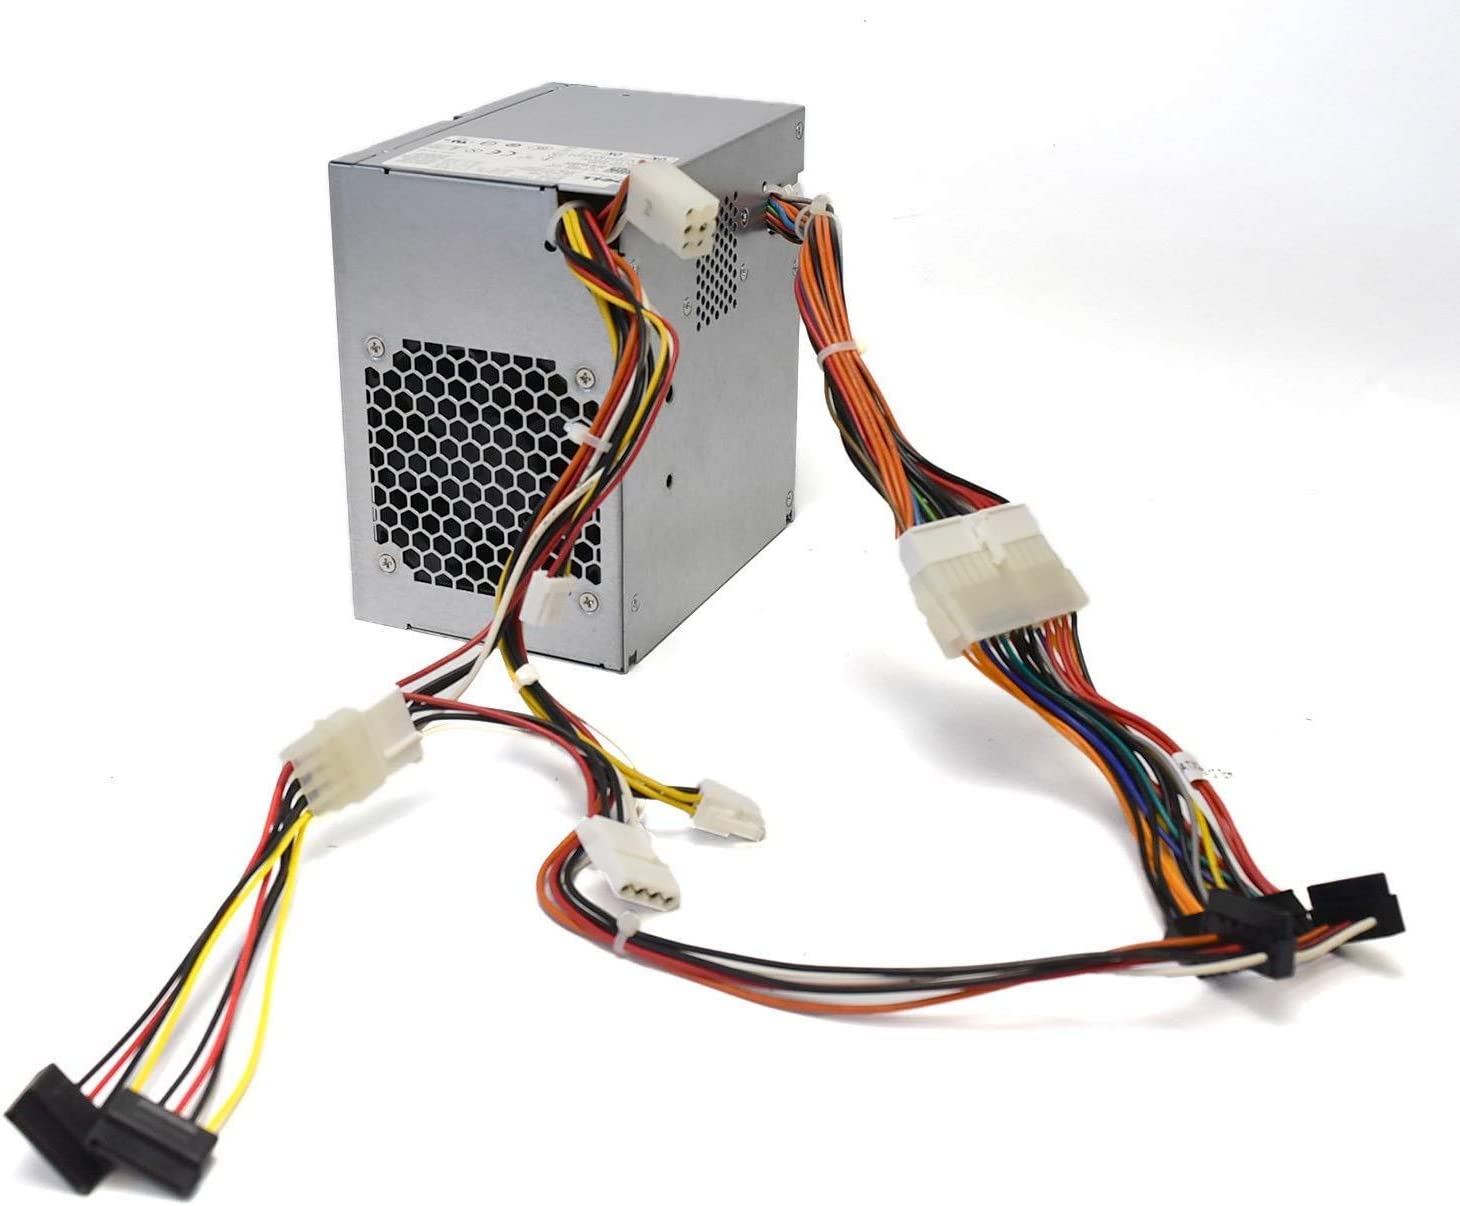 New K345R K346R M177R J775R Genuine OEM Dell 305 Watt Power supply Fits Optiplex 980 Tower MT PC Computer 24-Pin Mini ATX 4-Pin Floppy SATA F305P-00 H305P-02 L305P-03 AC305AM-00 W/ Adapters